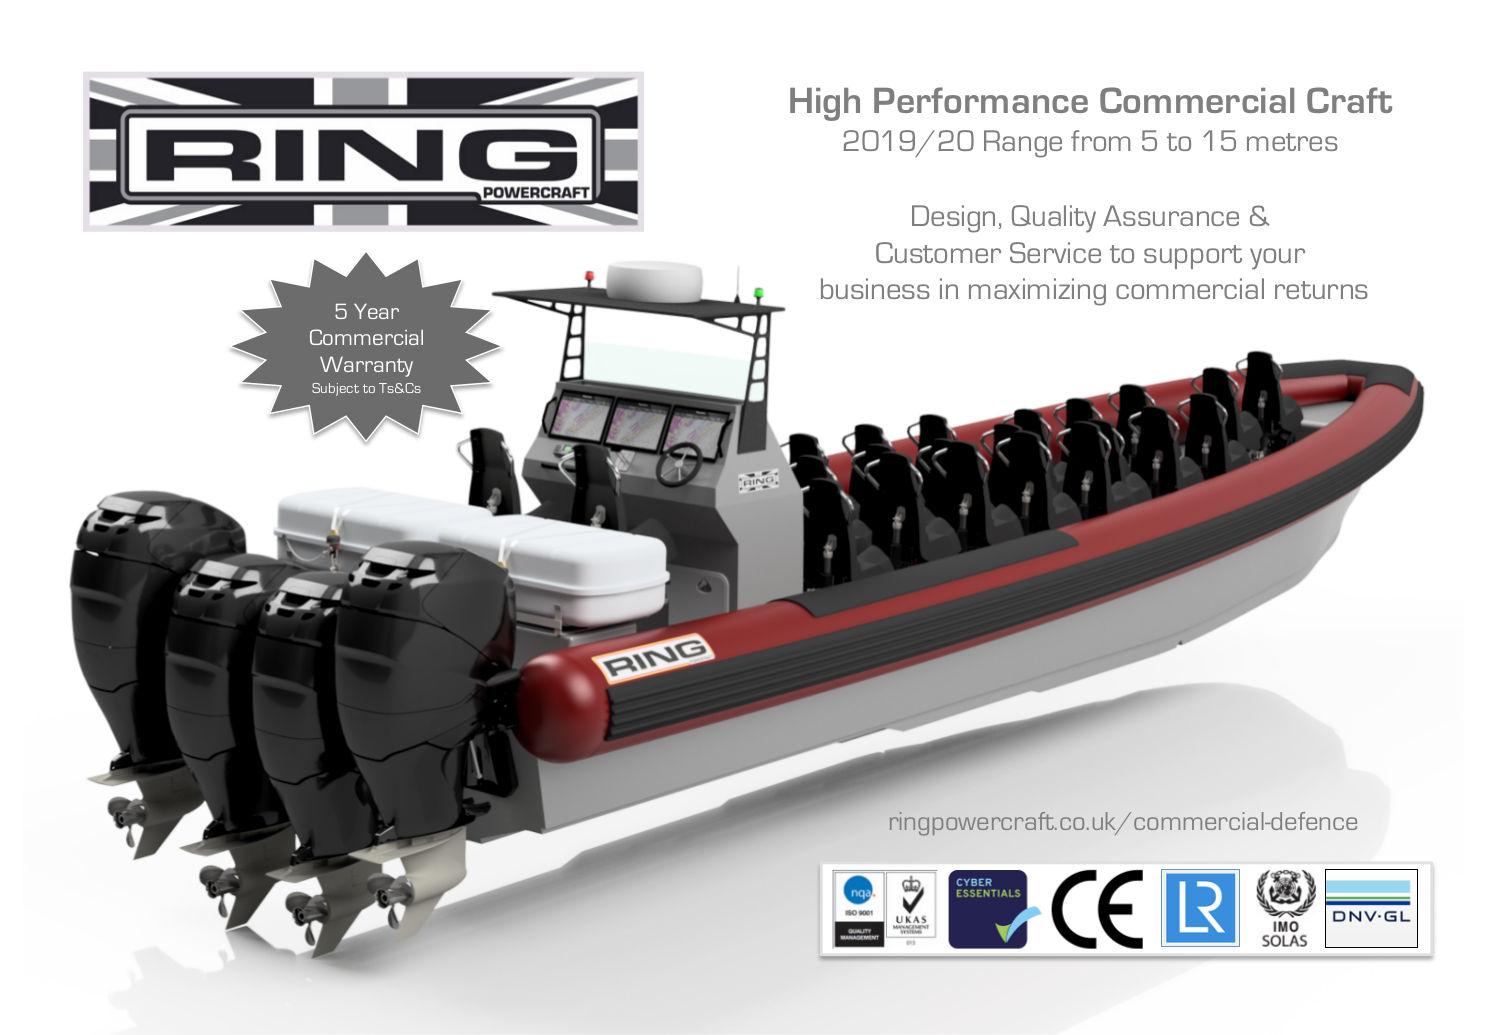 Ring Powercraft launches 2019/20 Range of Commercial Boats